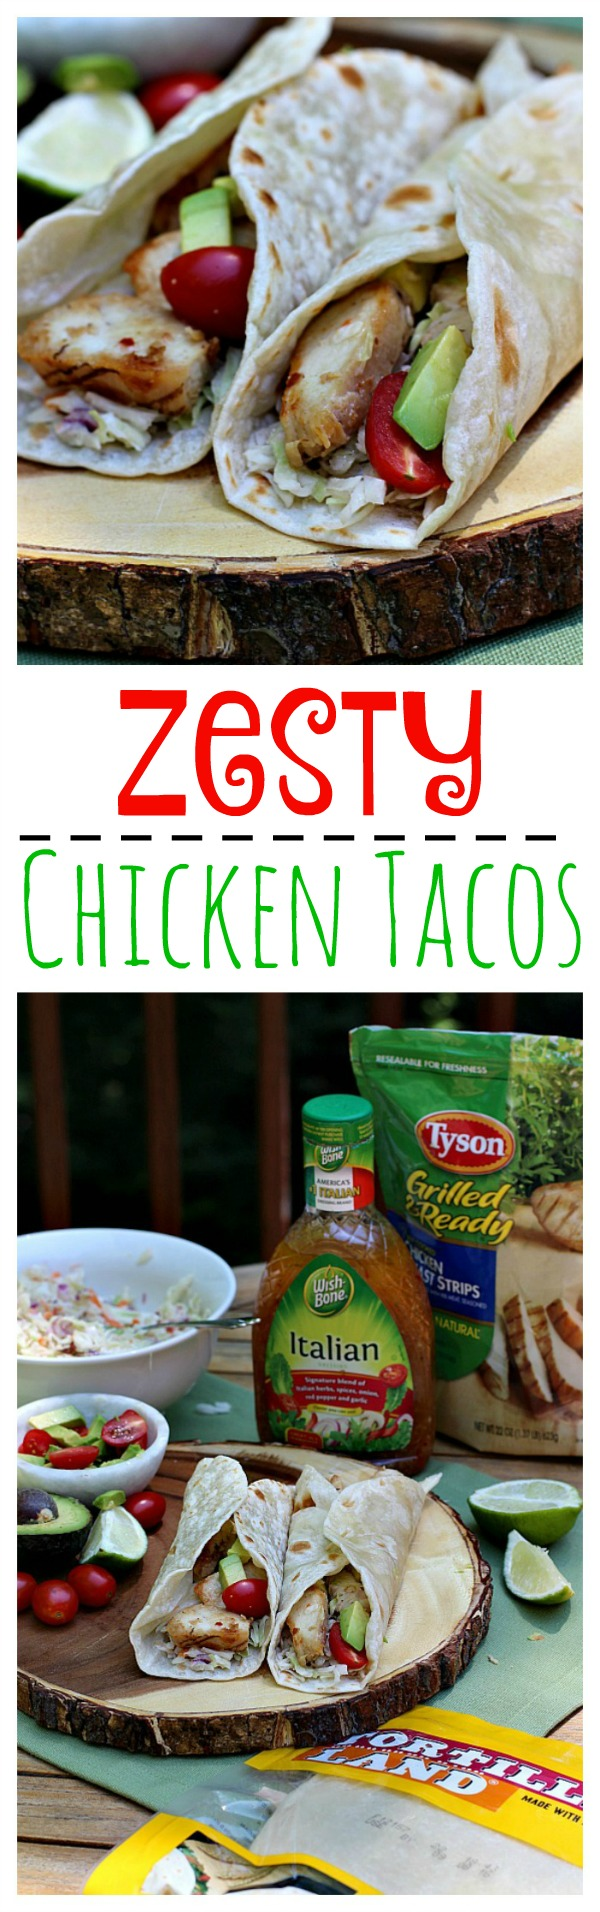 Zesty Chicken Tacos Collage